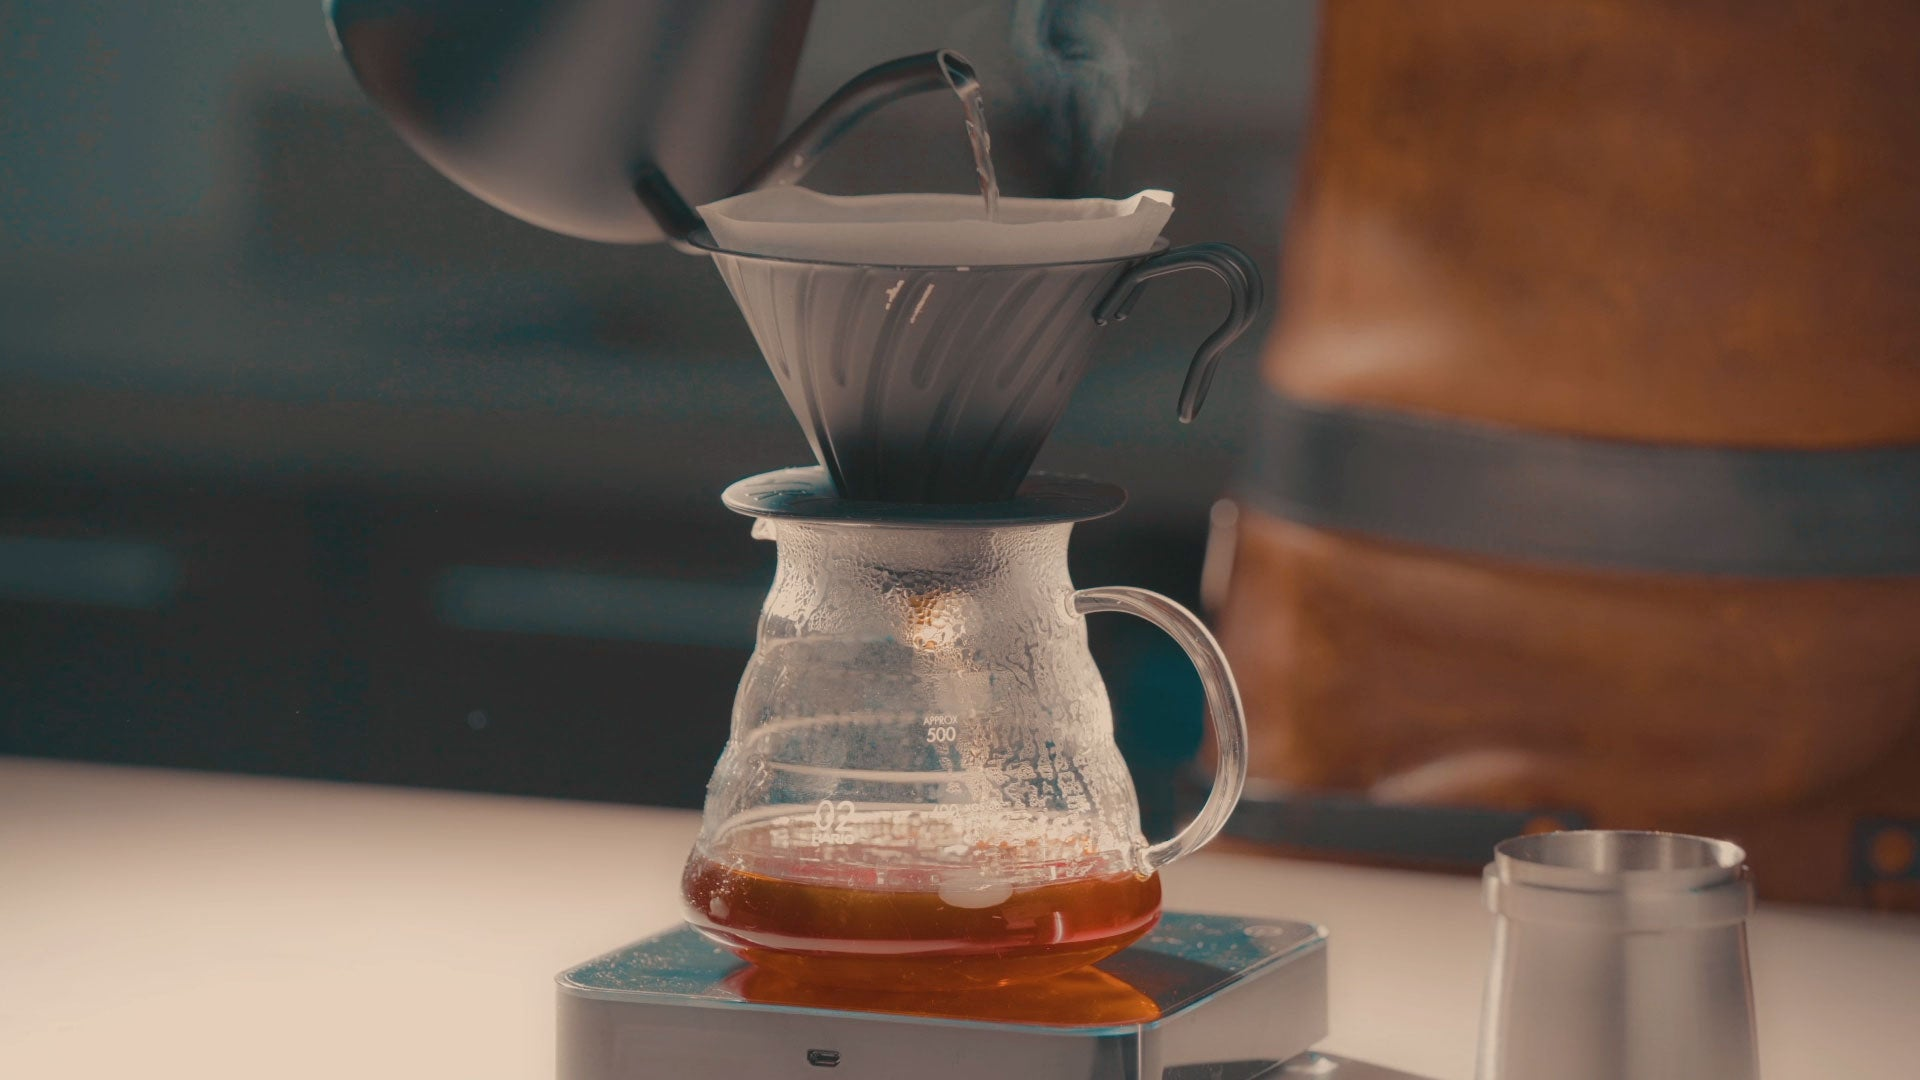 Hario V60 Range Server 600ml Clear Borosilicate Glass photographed at The Espresso Lab Roastery